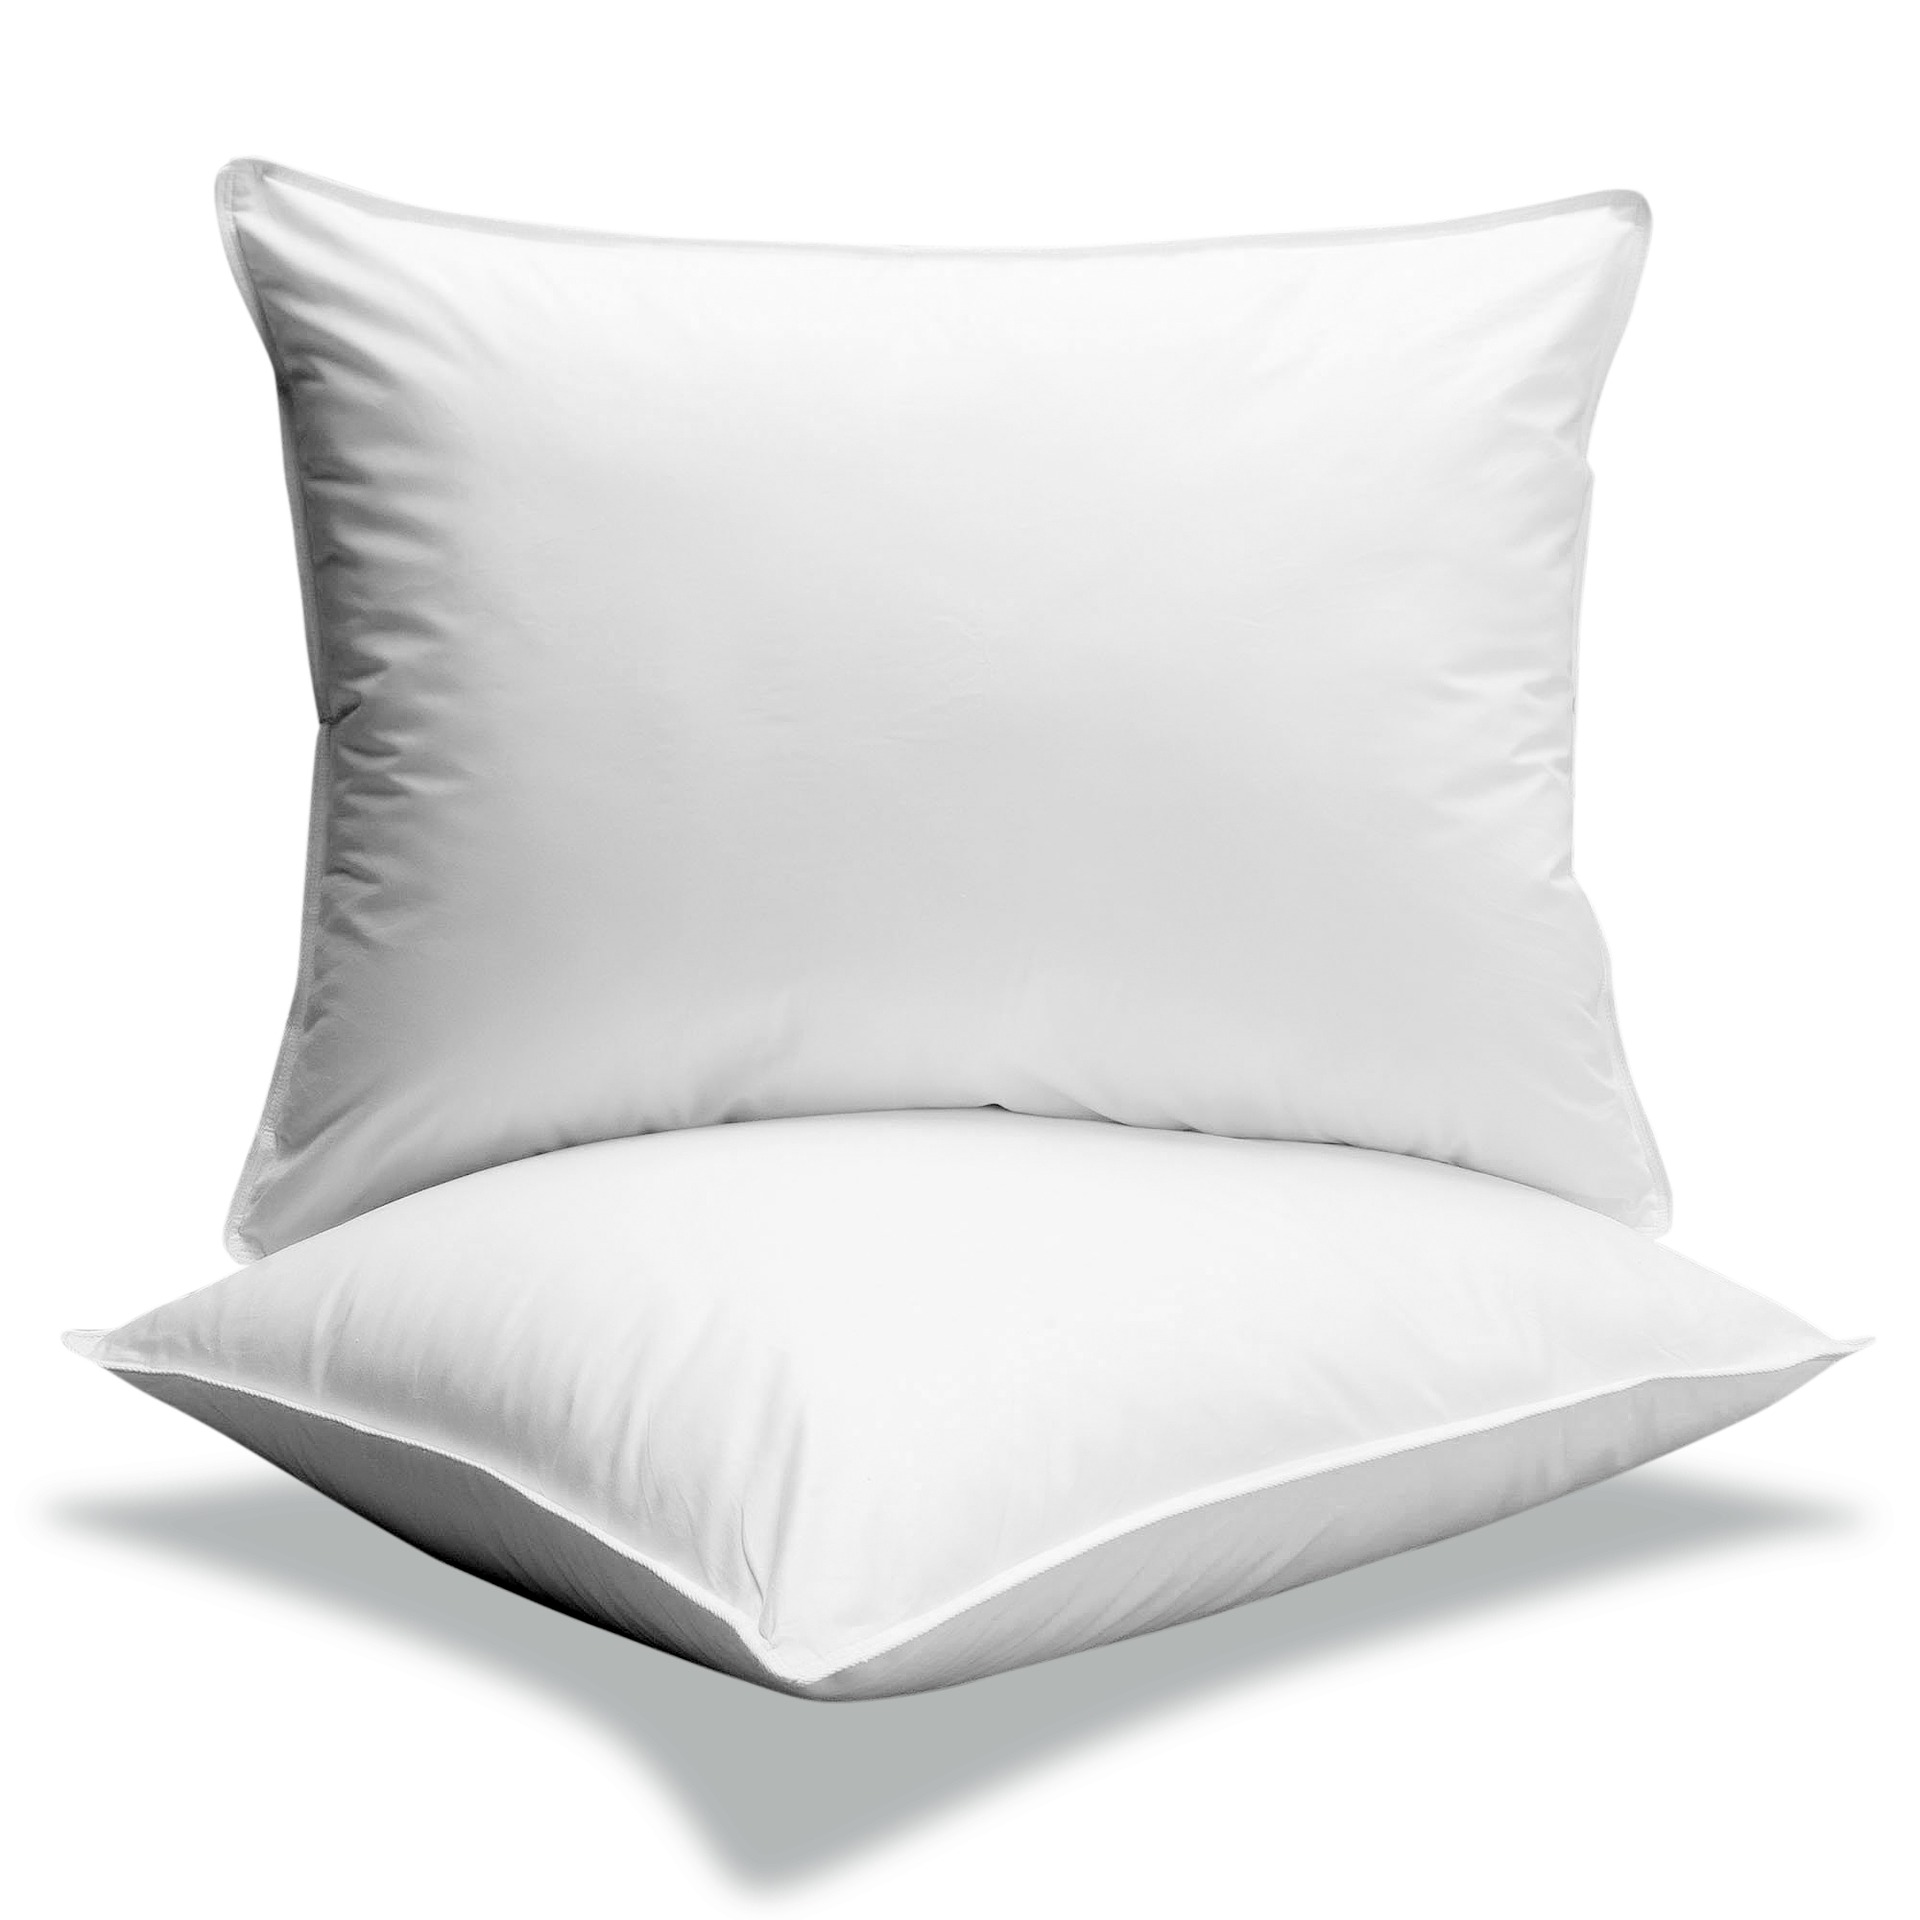 Hypoallergenic Pillows